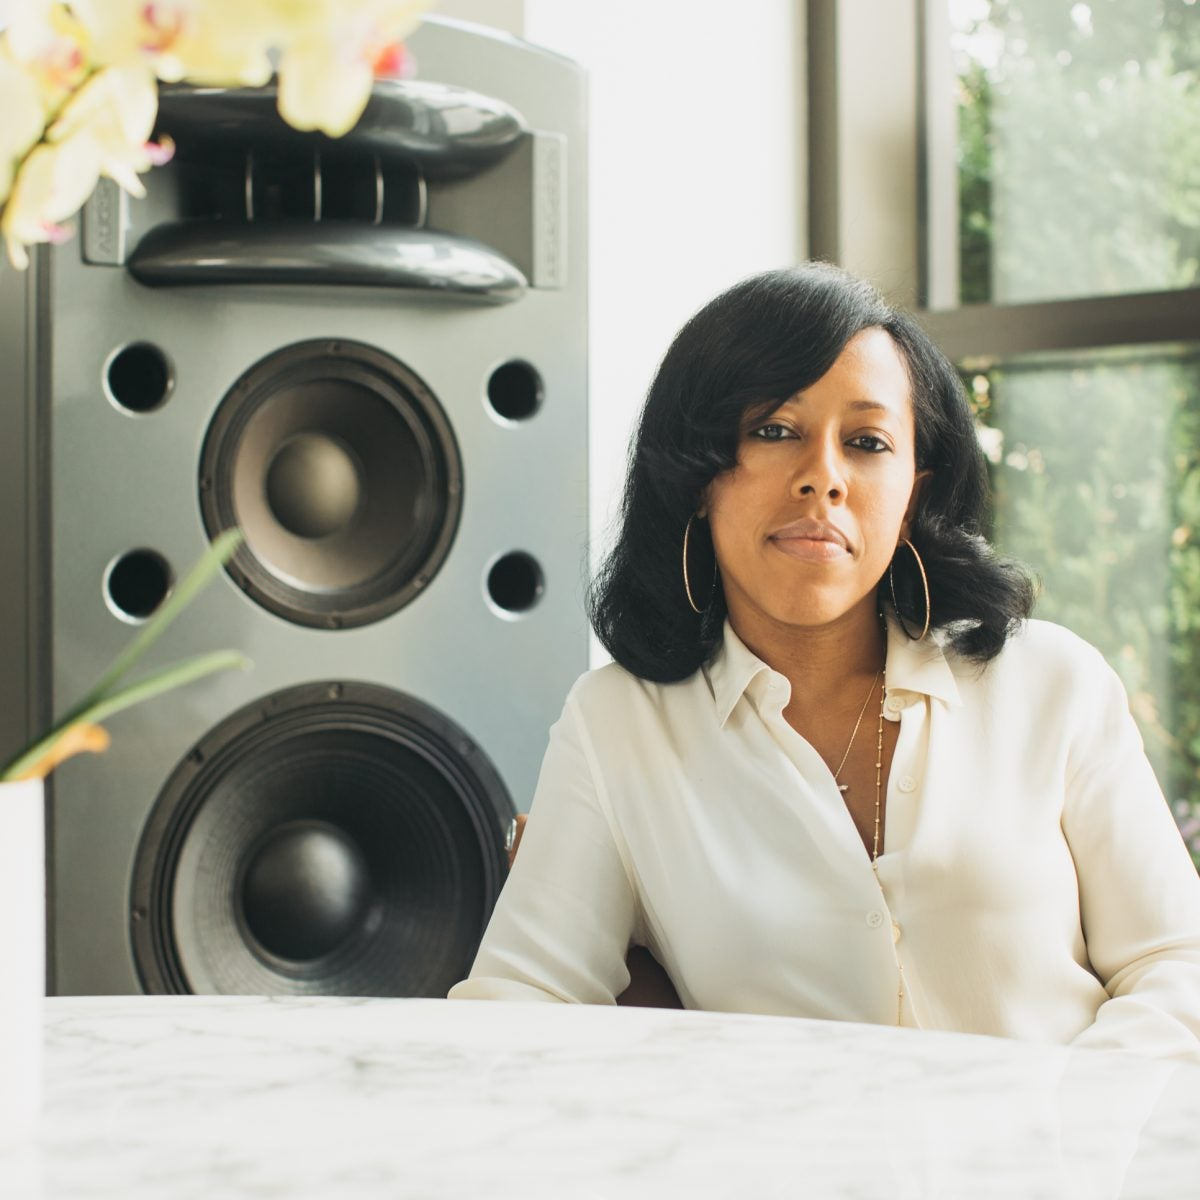 Shari Bryant Went From Roc-A-Fella Intern To Roc Nation President By Choosing To Serve